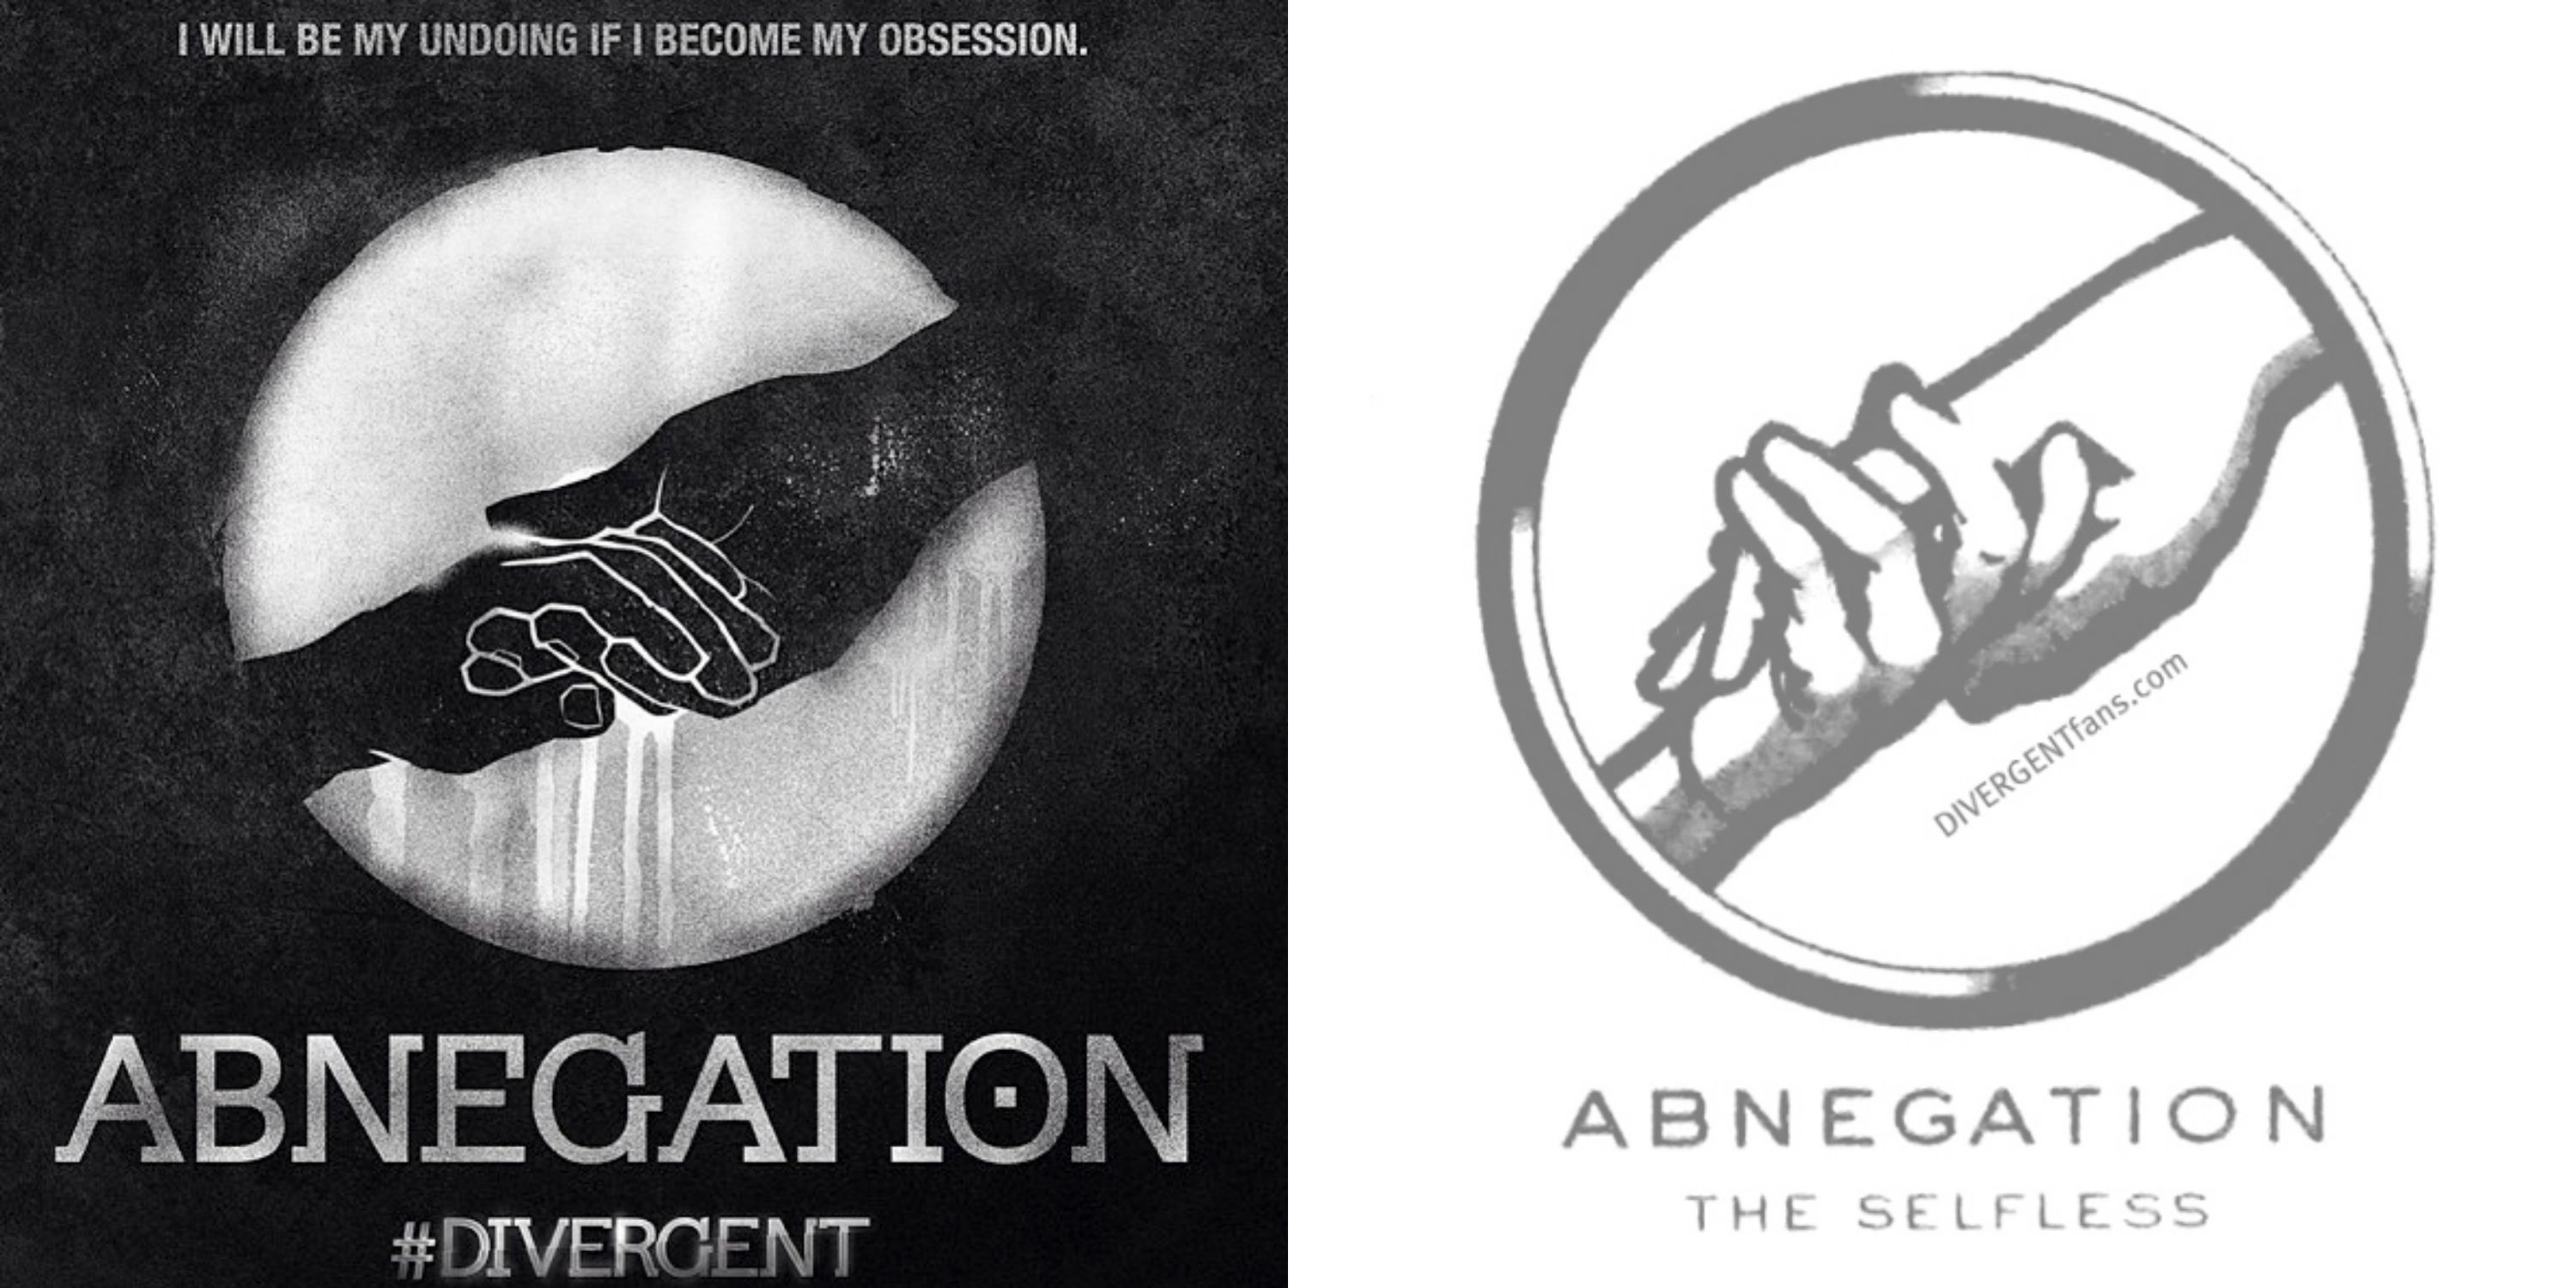 divergent factions symbols black and white wwwimgkid